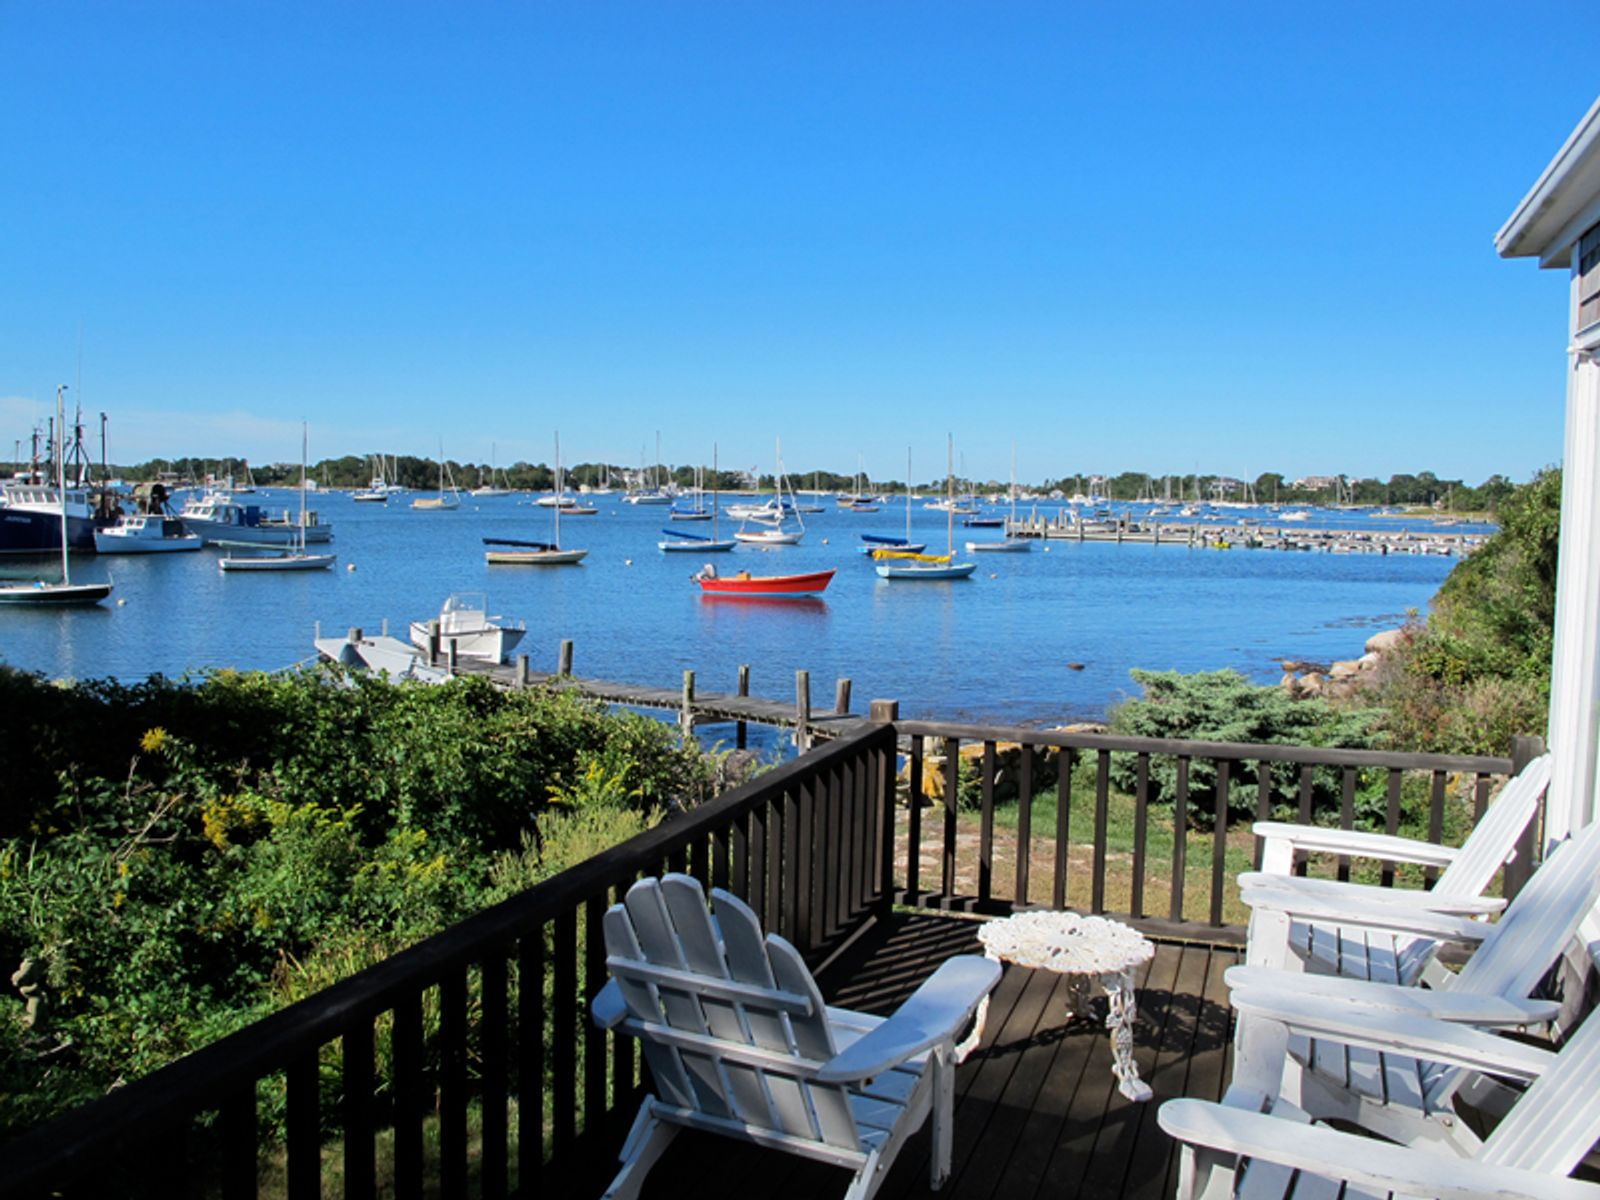 Woods Hole Village on Great Harbor